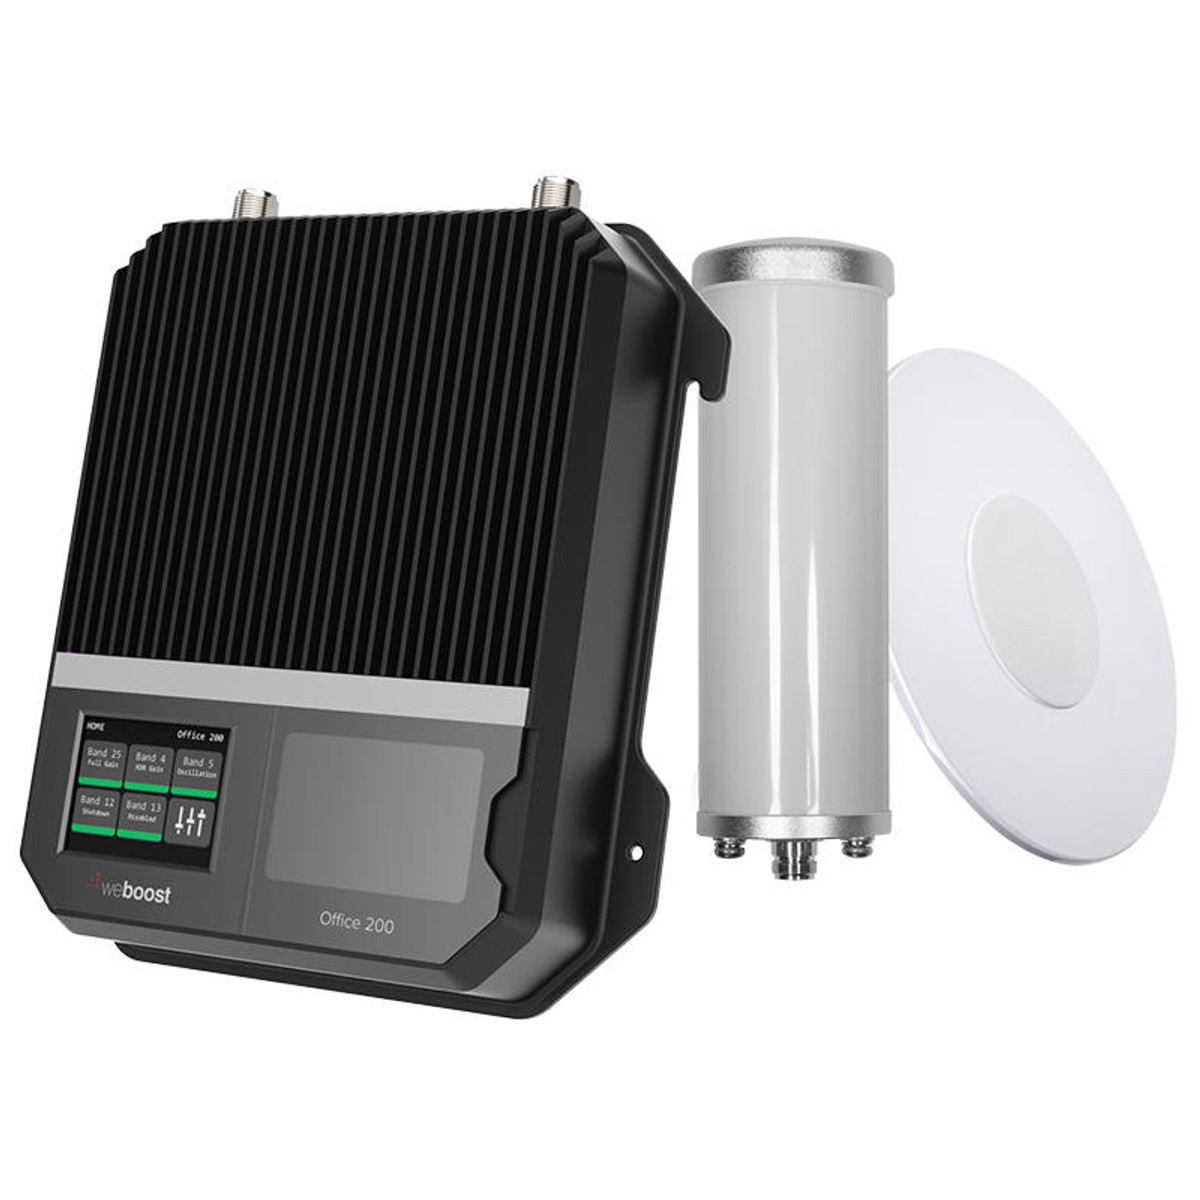 weBoost weBoost for Business Office 200 Signal Booster Kit